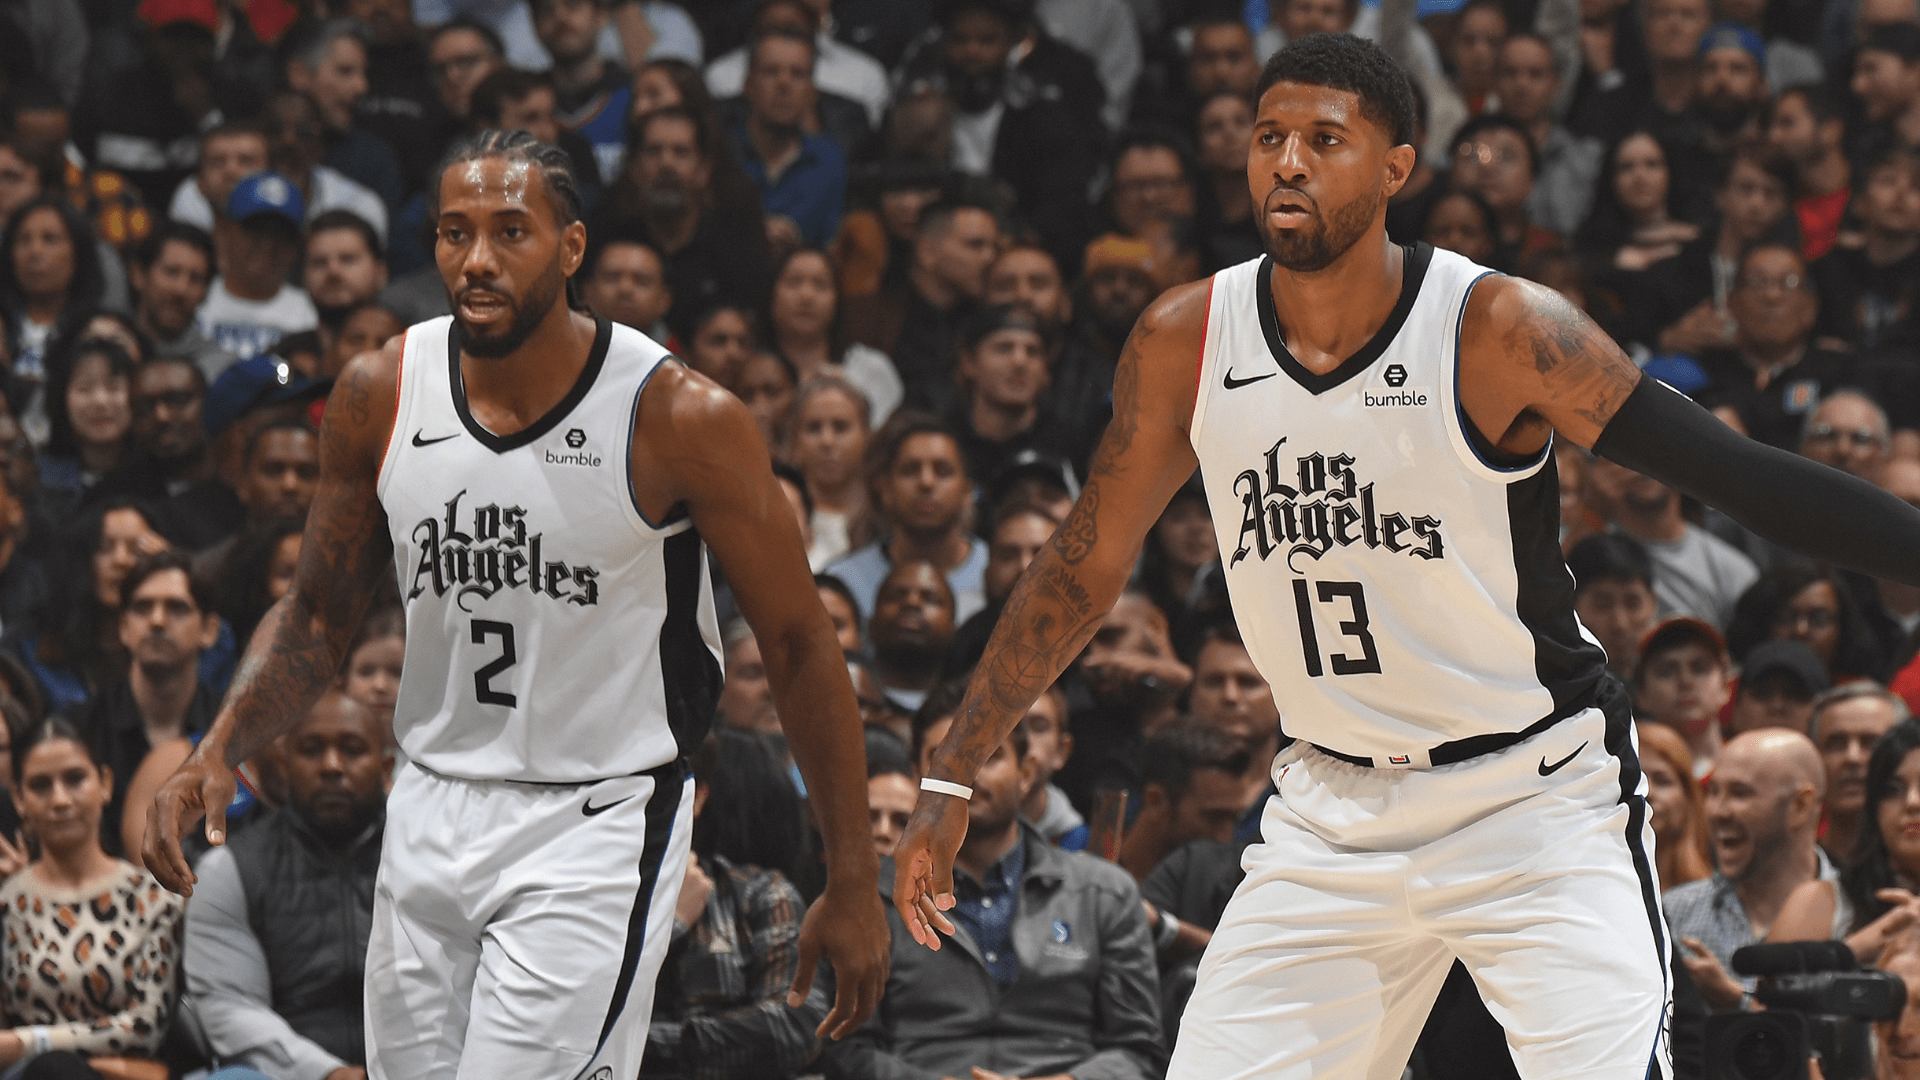 The best players Clippers players need to be big this season.